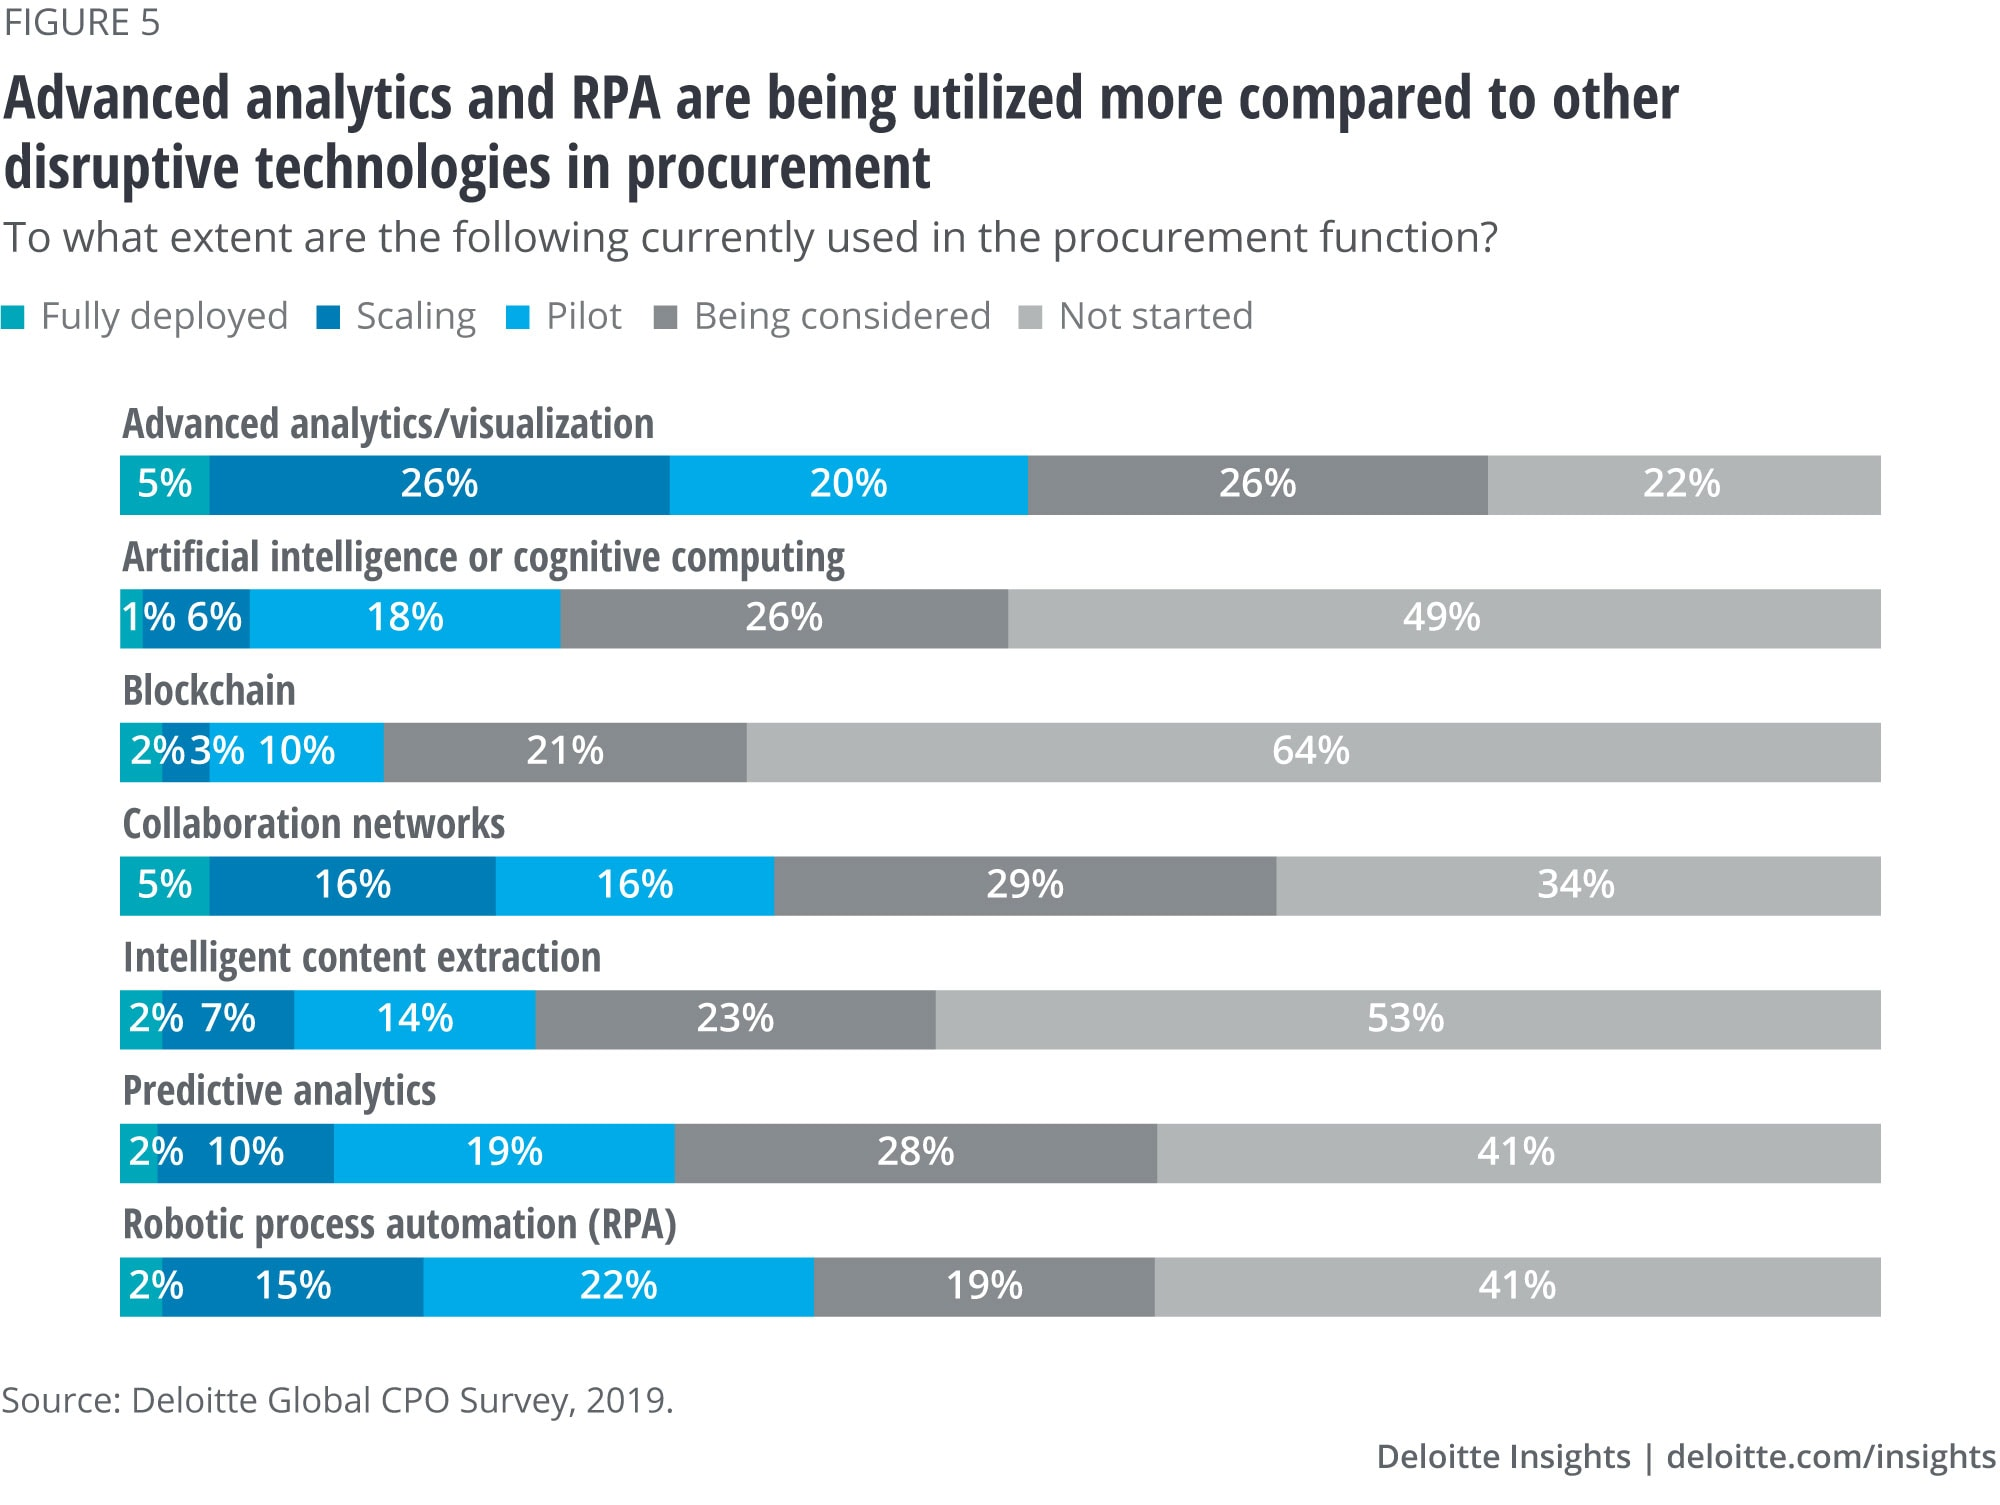 Advanced analytics and RPA are being utilized more compared to other disruptive technologies in procurement